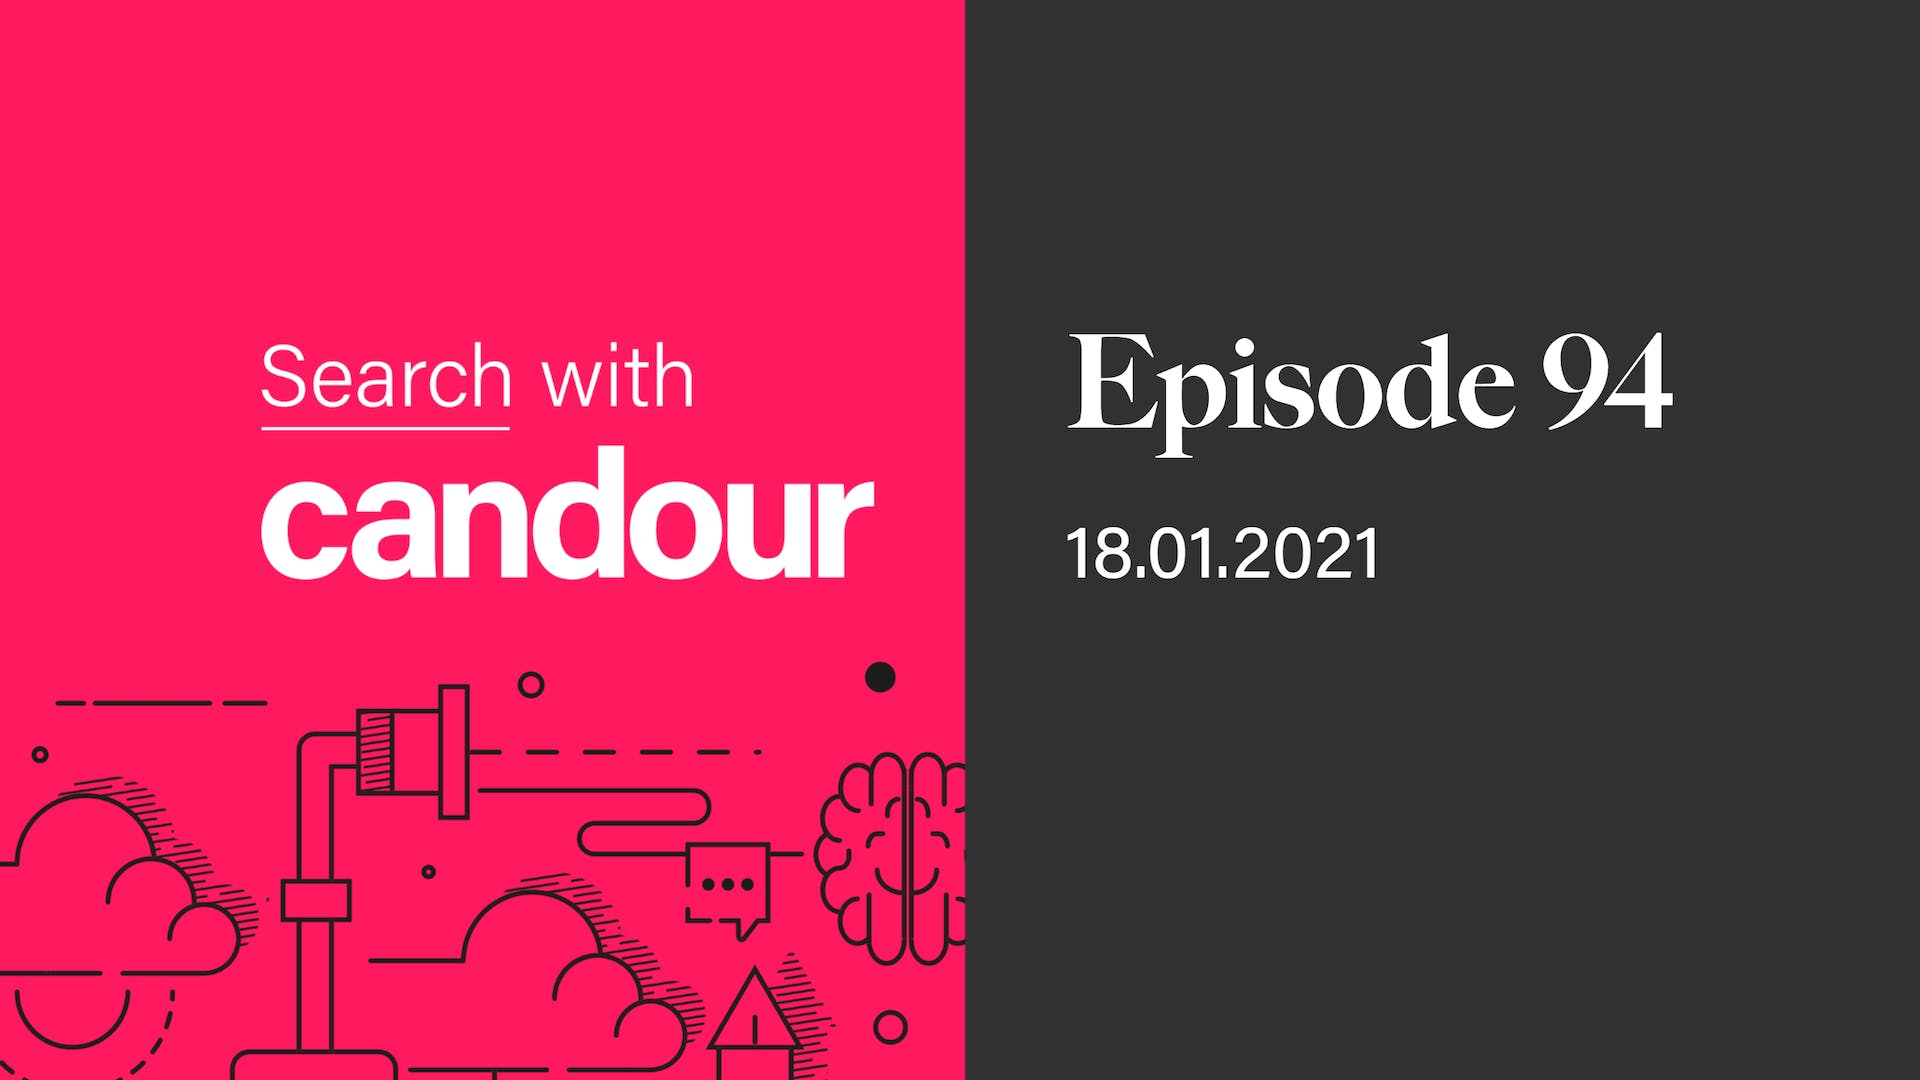 search with candour - episode 94